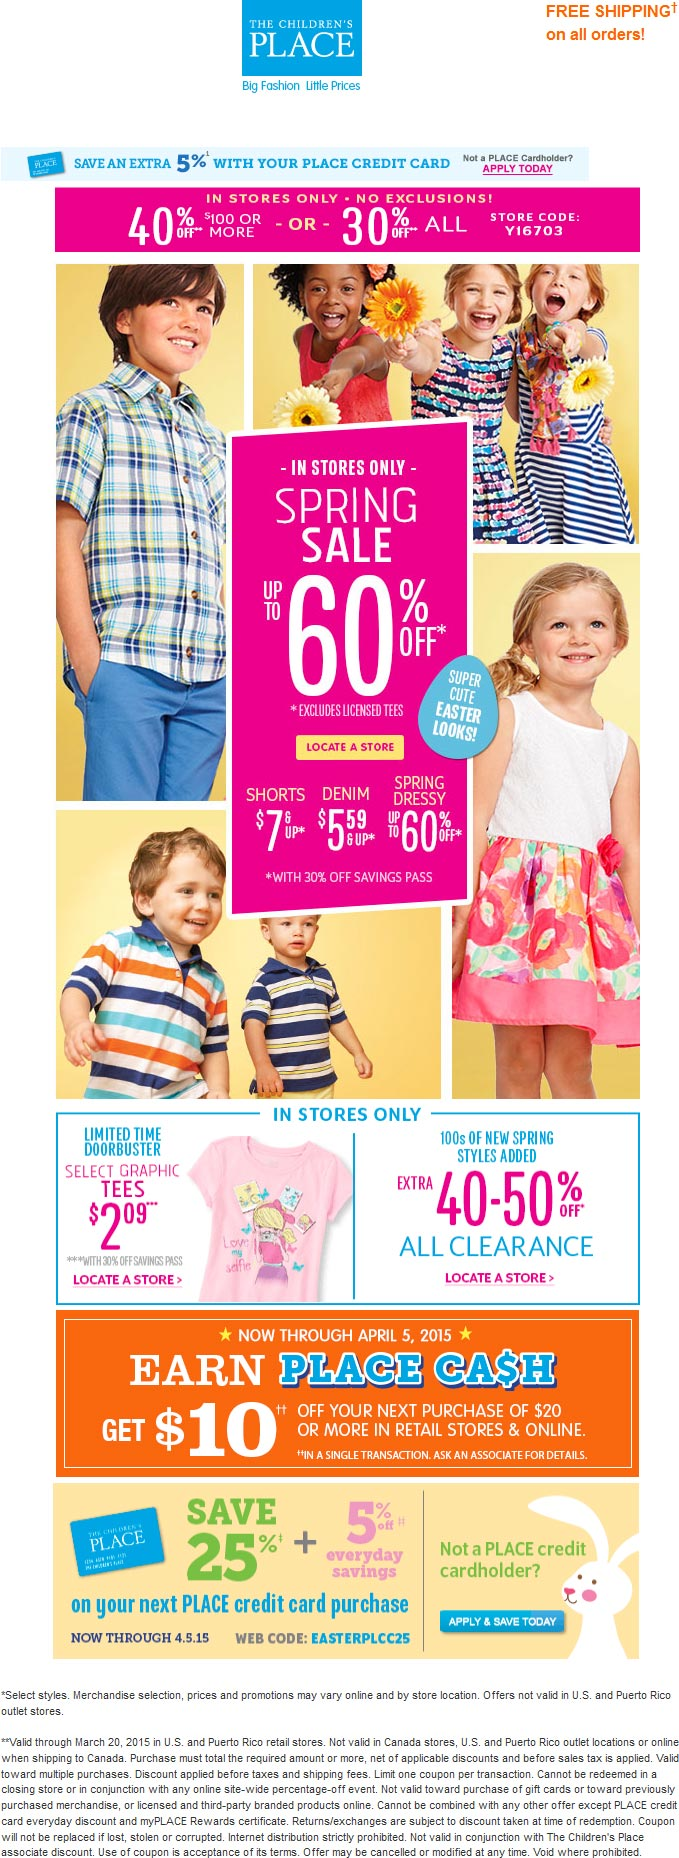 Childrens Place Coupon October 2016 30-40% off everyhing at The Childrens Place